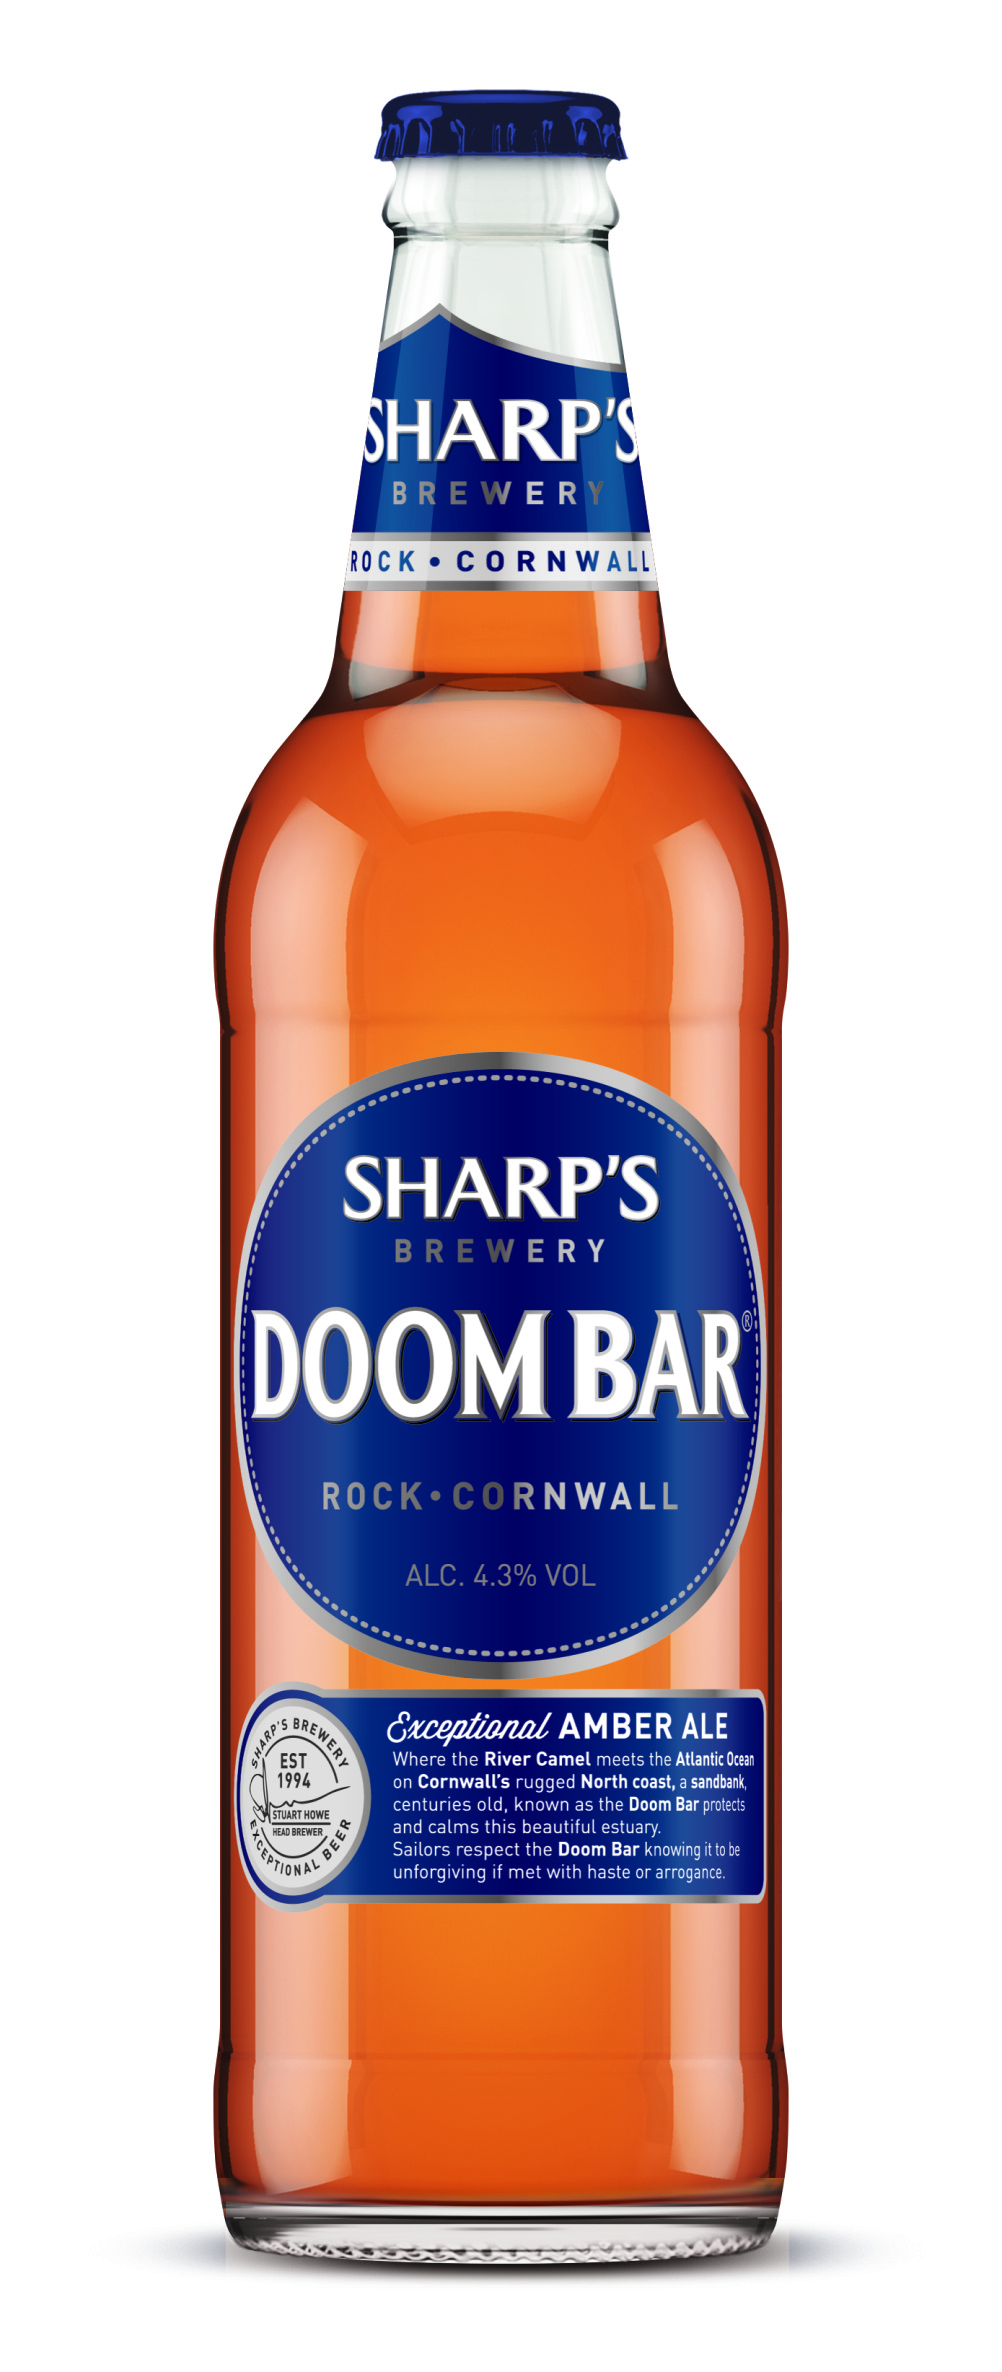 Doom Bar bottle